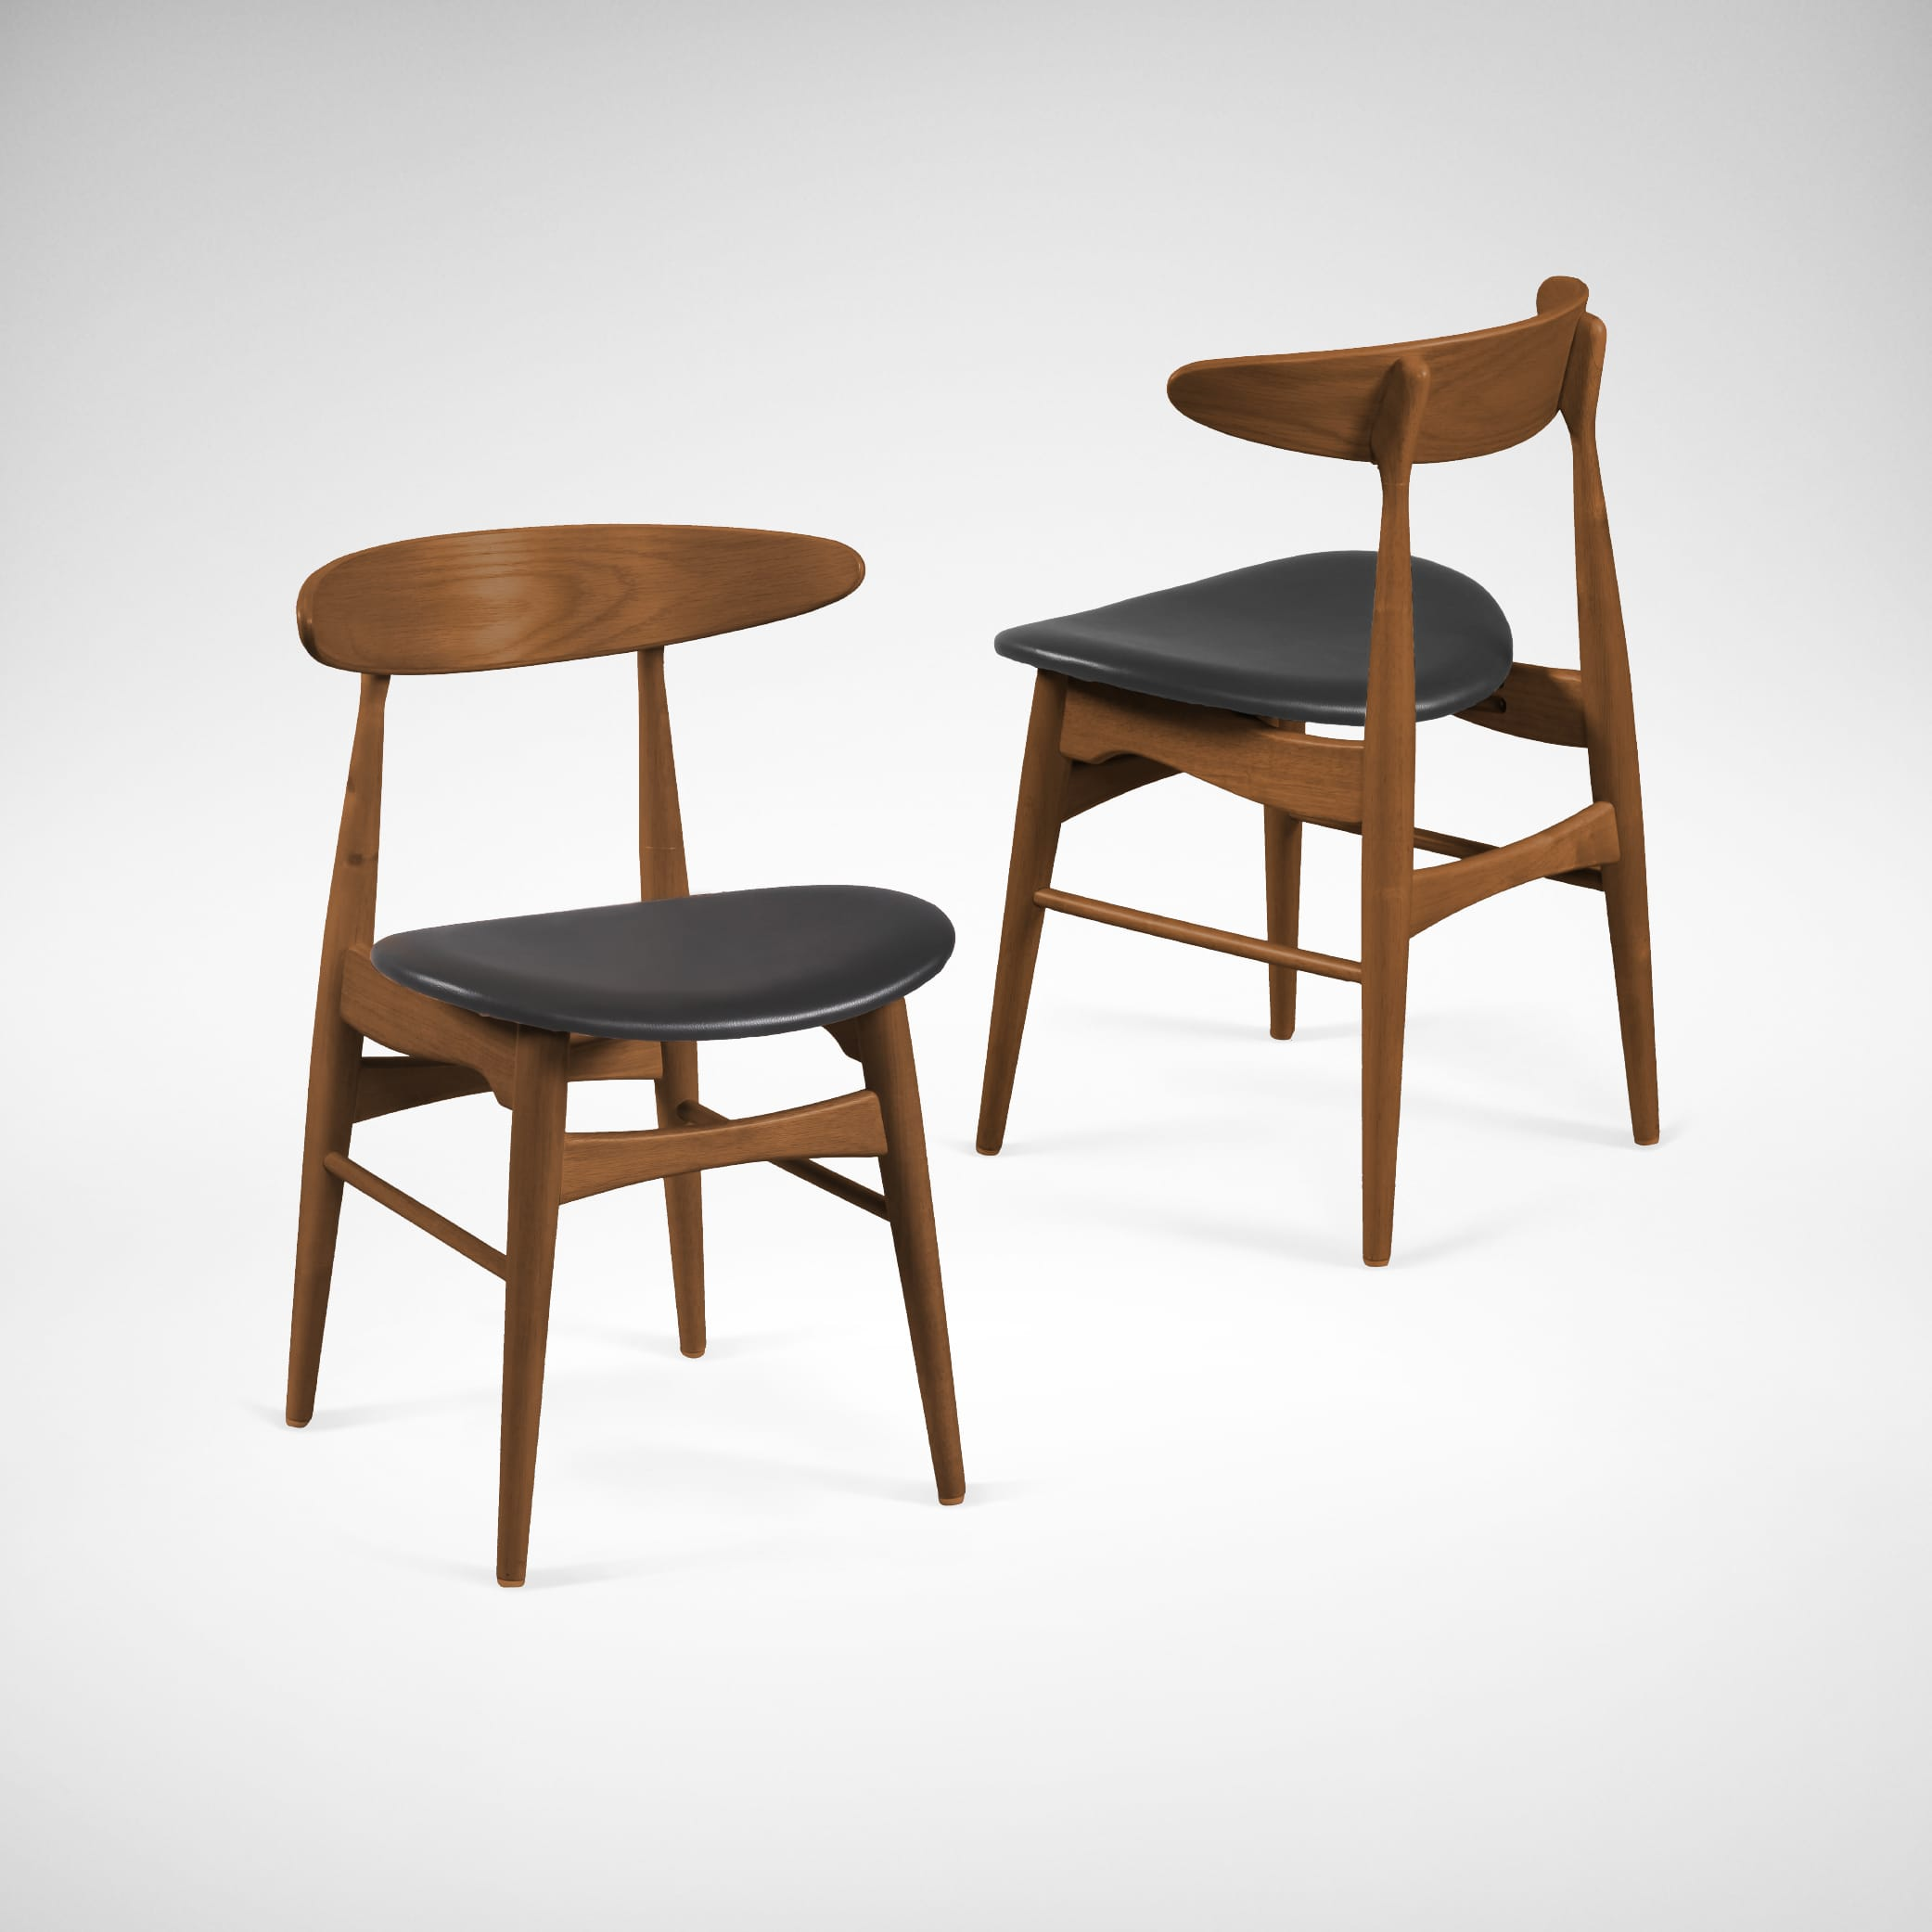 Hanoi Side Chair Cocoa Comfort Design The Chair Table People